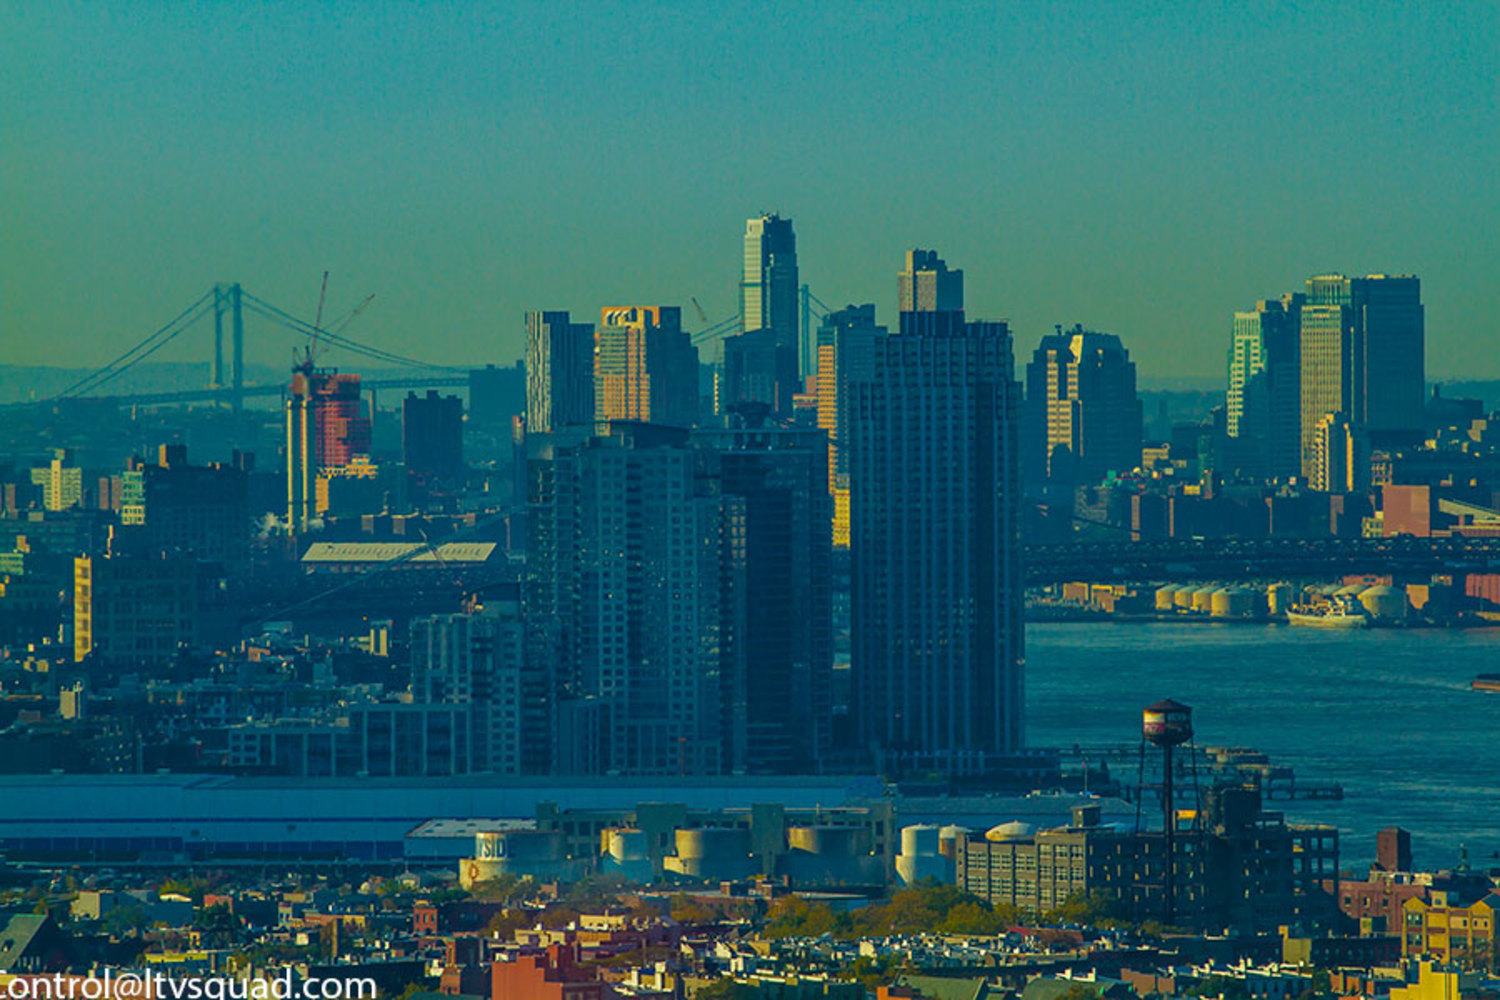 Williamsburg, and Lower Manhattan. The watertower at Greenpoint Terminal is in the foreground.